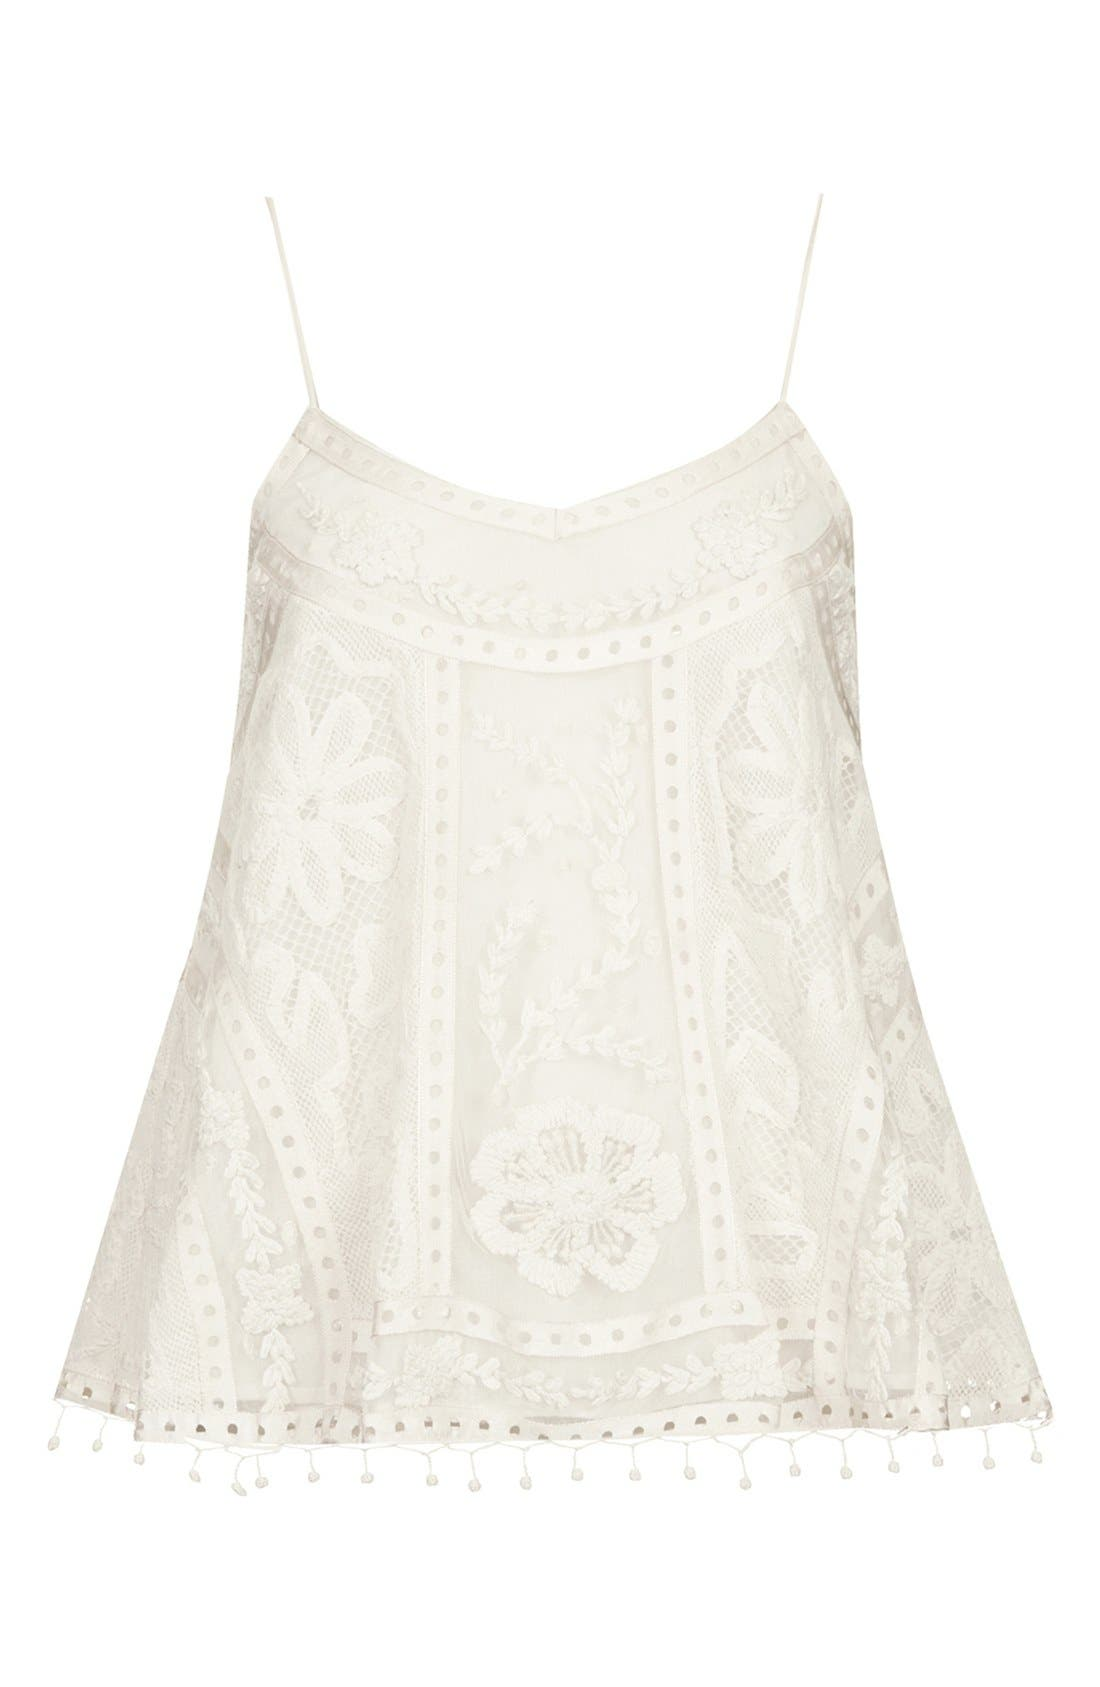 Kate Moss for Topshop Lace Swing Camisole,                             Alternate thumbnail 2, color,